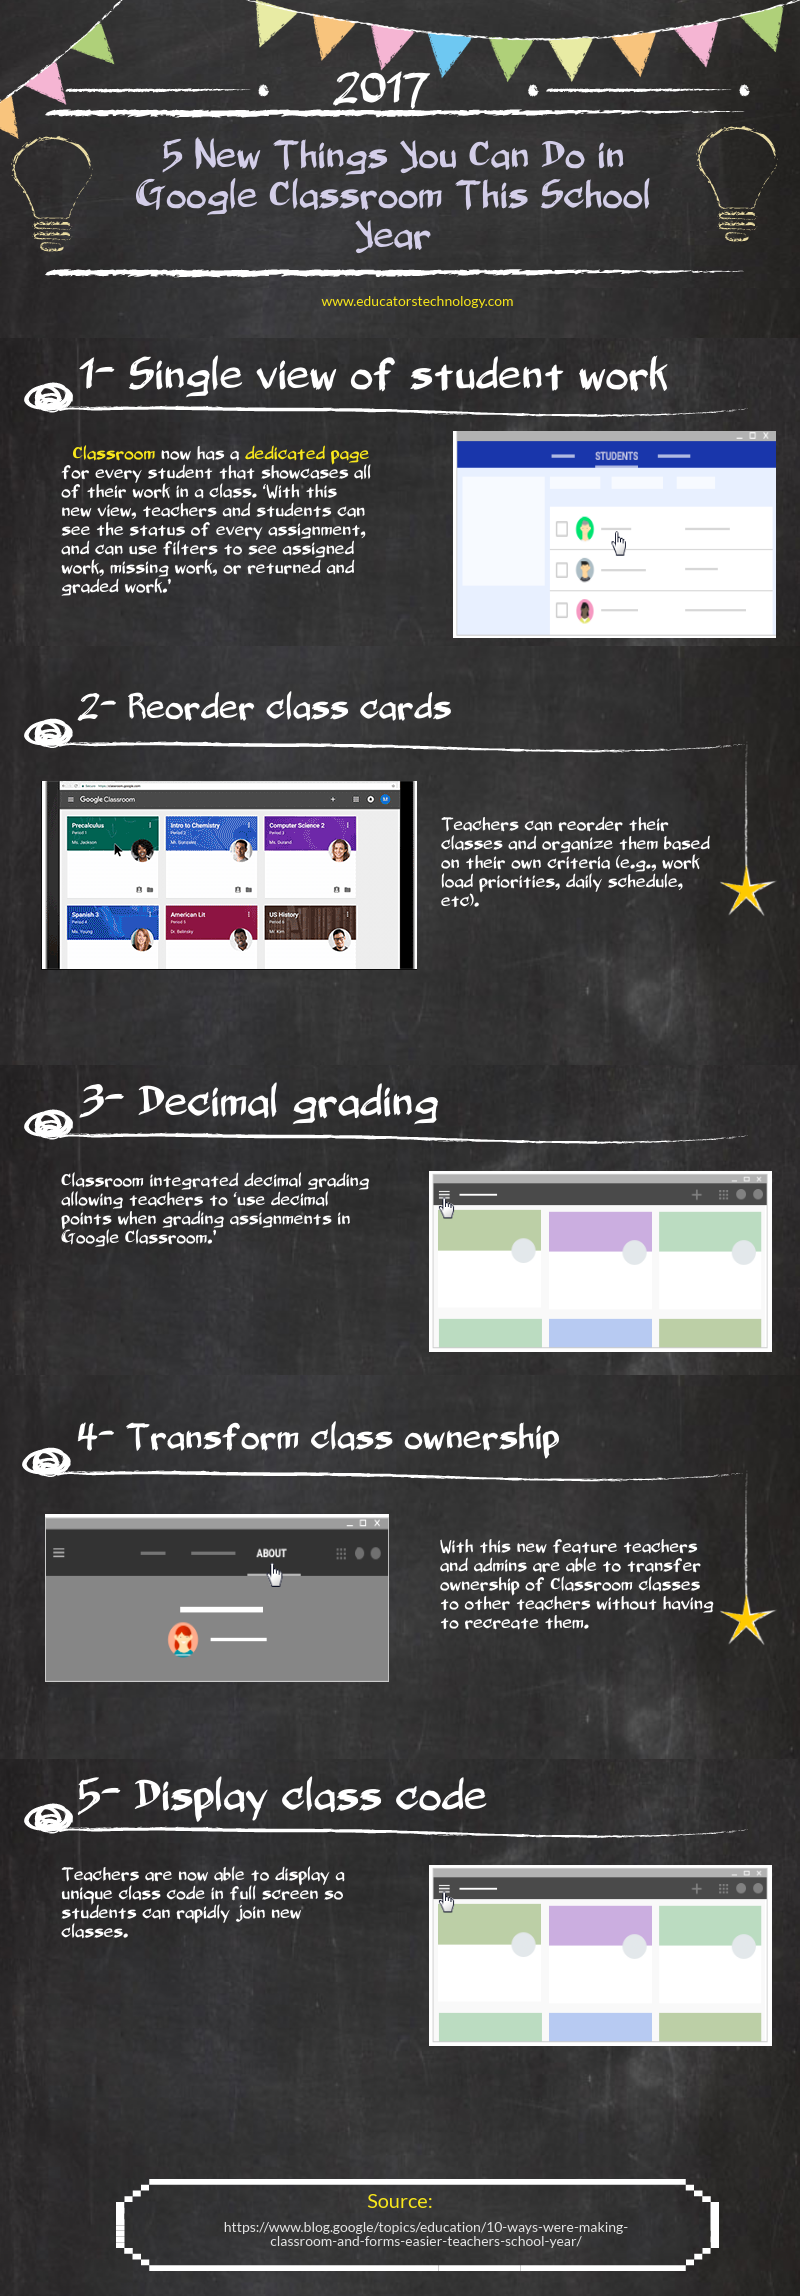 5 New Things You Can Do in Google Classroom This School Year